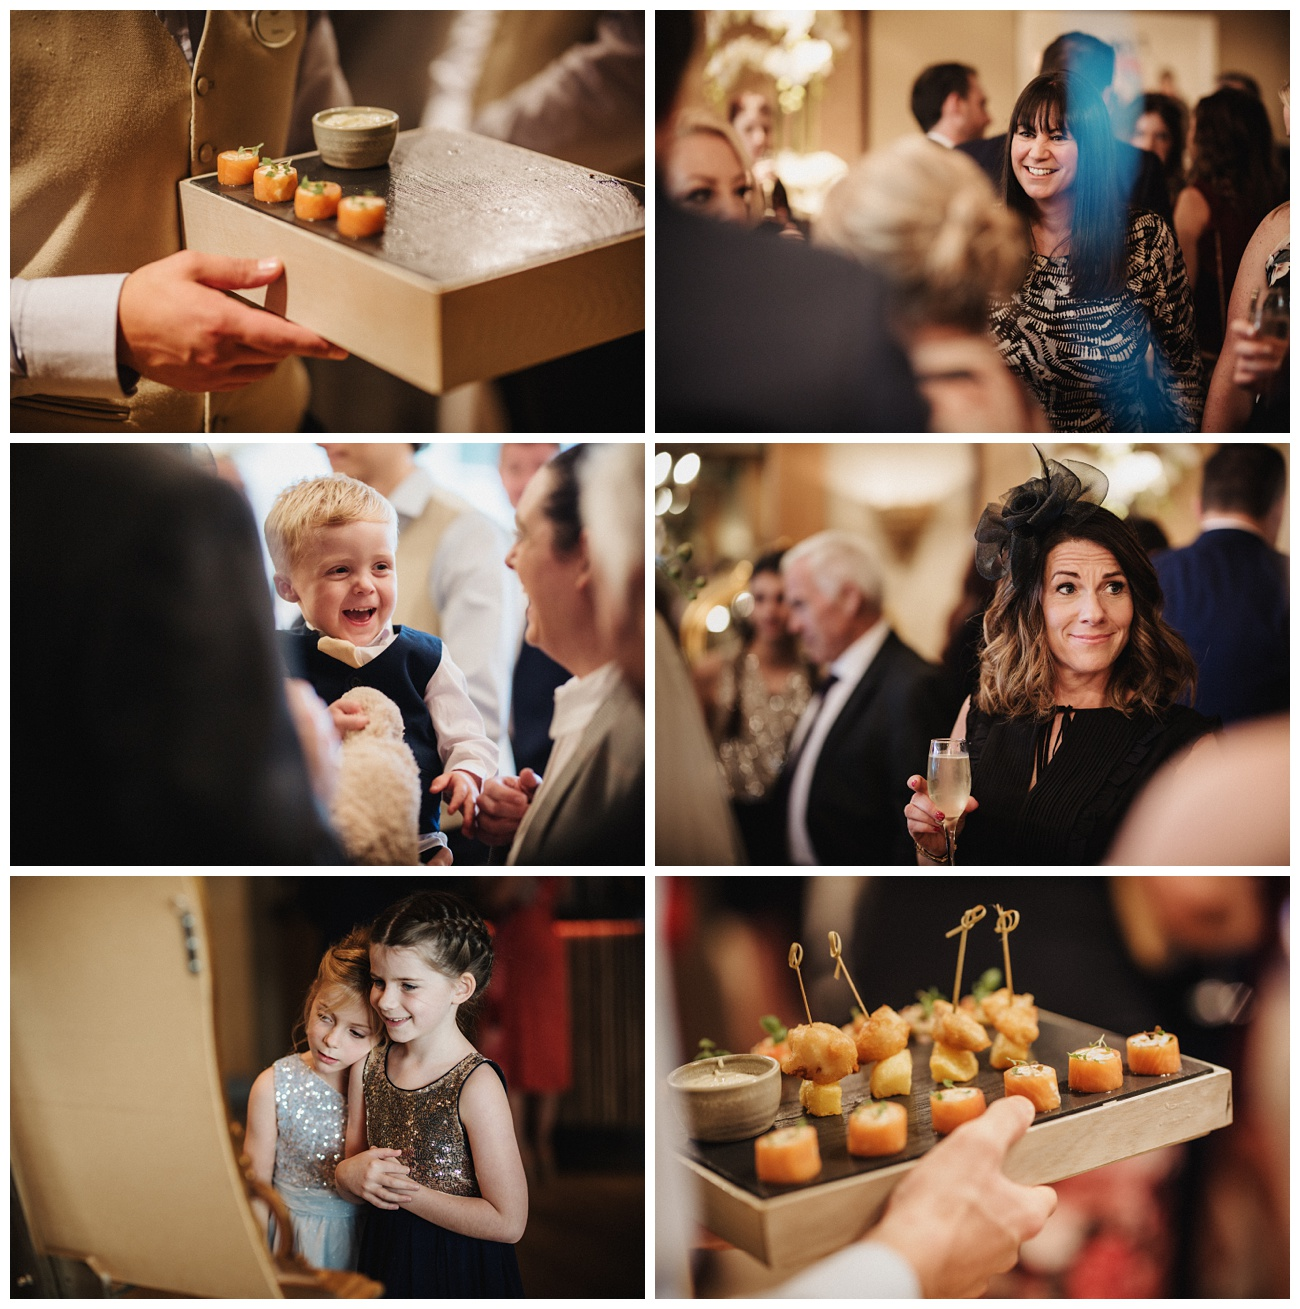 Drinks and Canapes are enjoyed by the guests